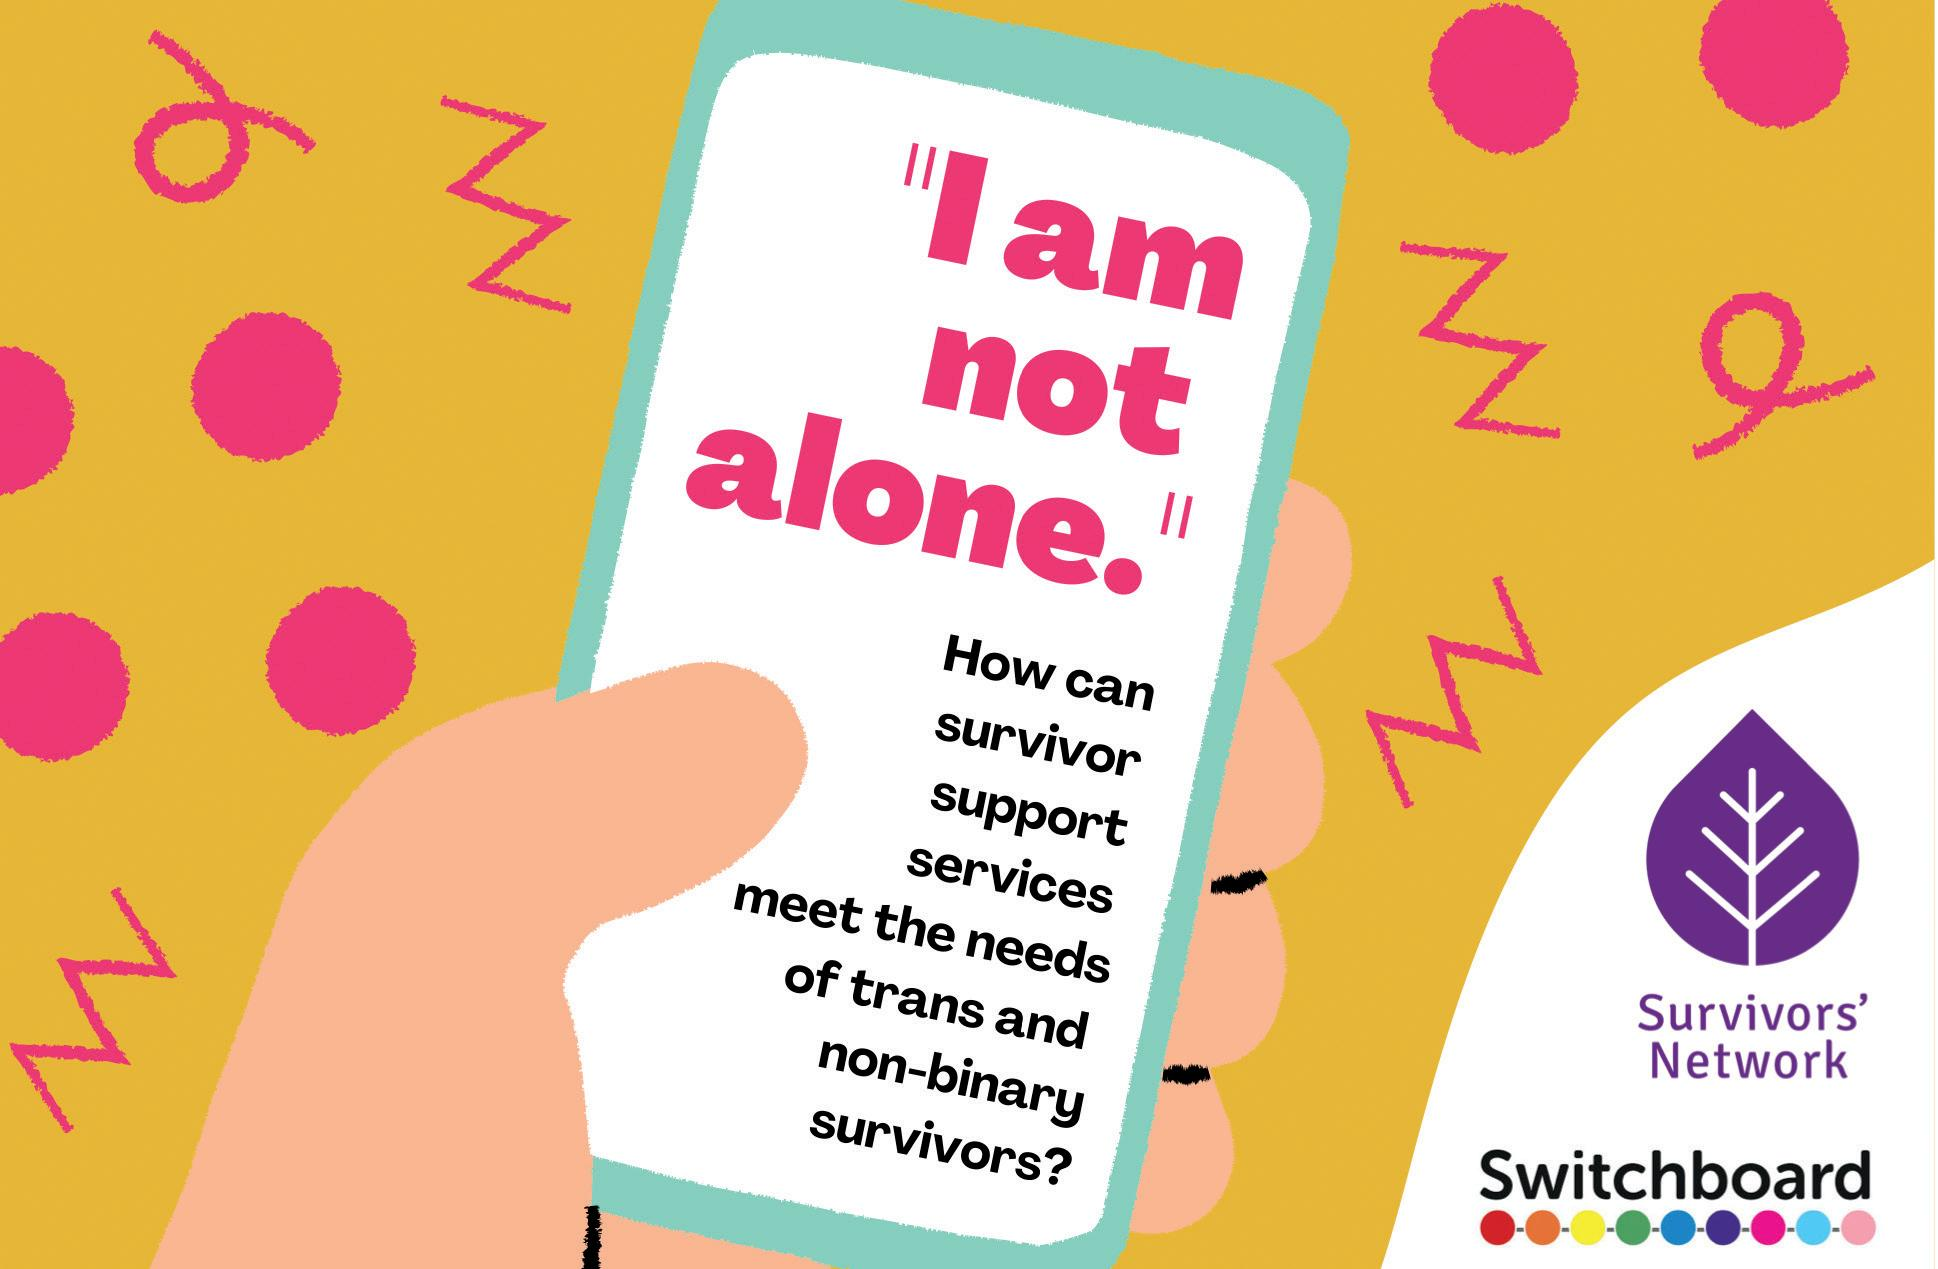 Page 6 of New report on supporting trans and nonbinary survivors of sexual violence